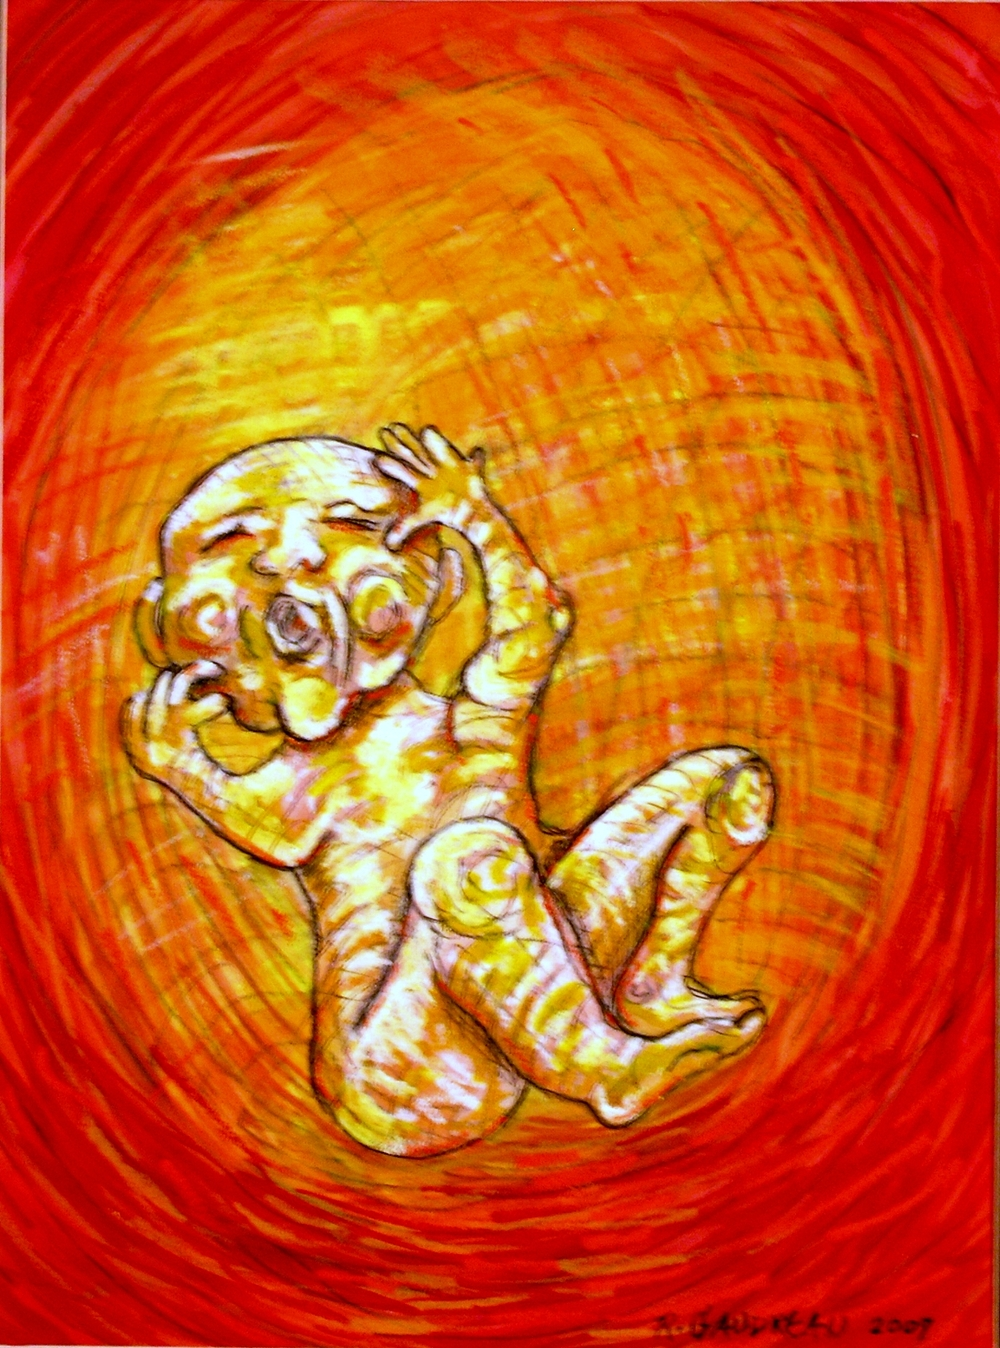 My Daughters Embryonic State Ready to Feed    2007 Gouache, Oil Pastel mixed media painting on watercolor paper 16H x 12W inches